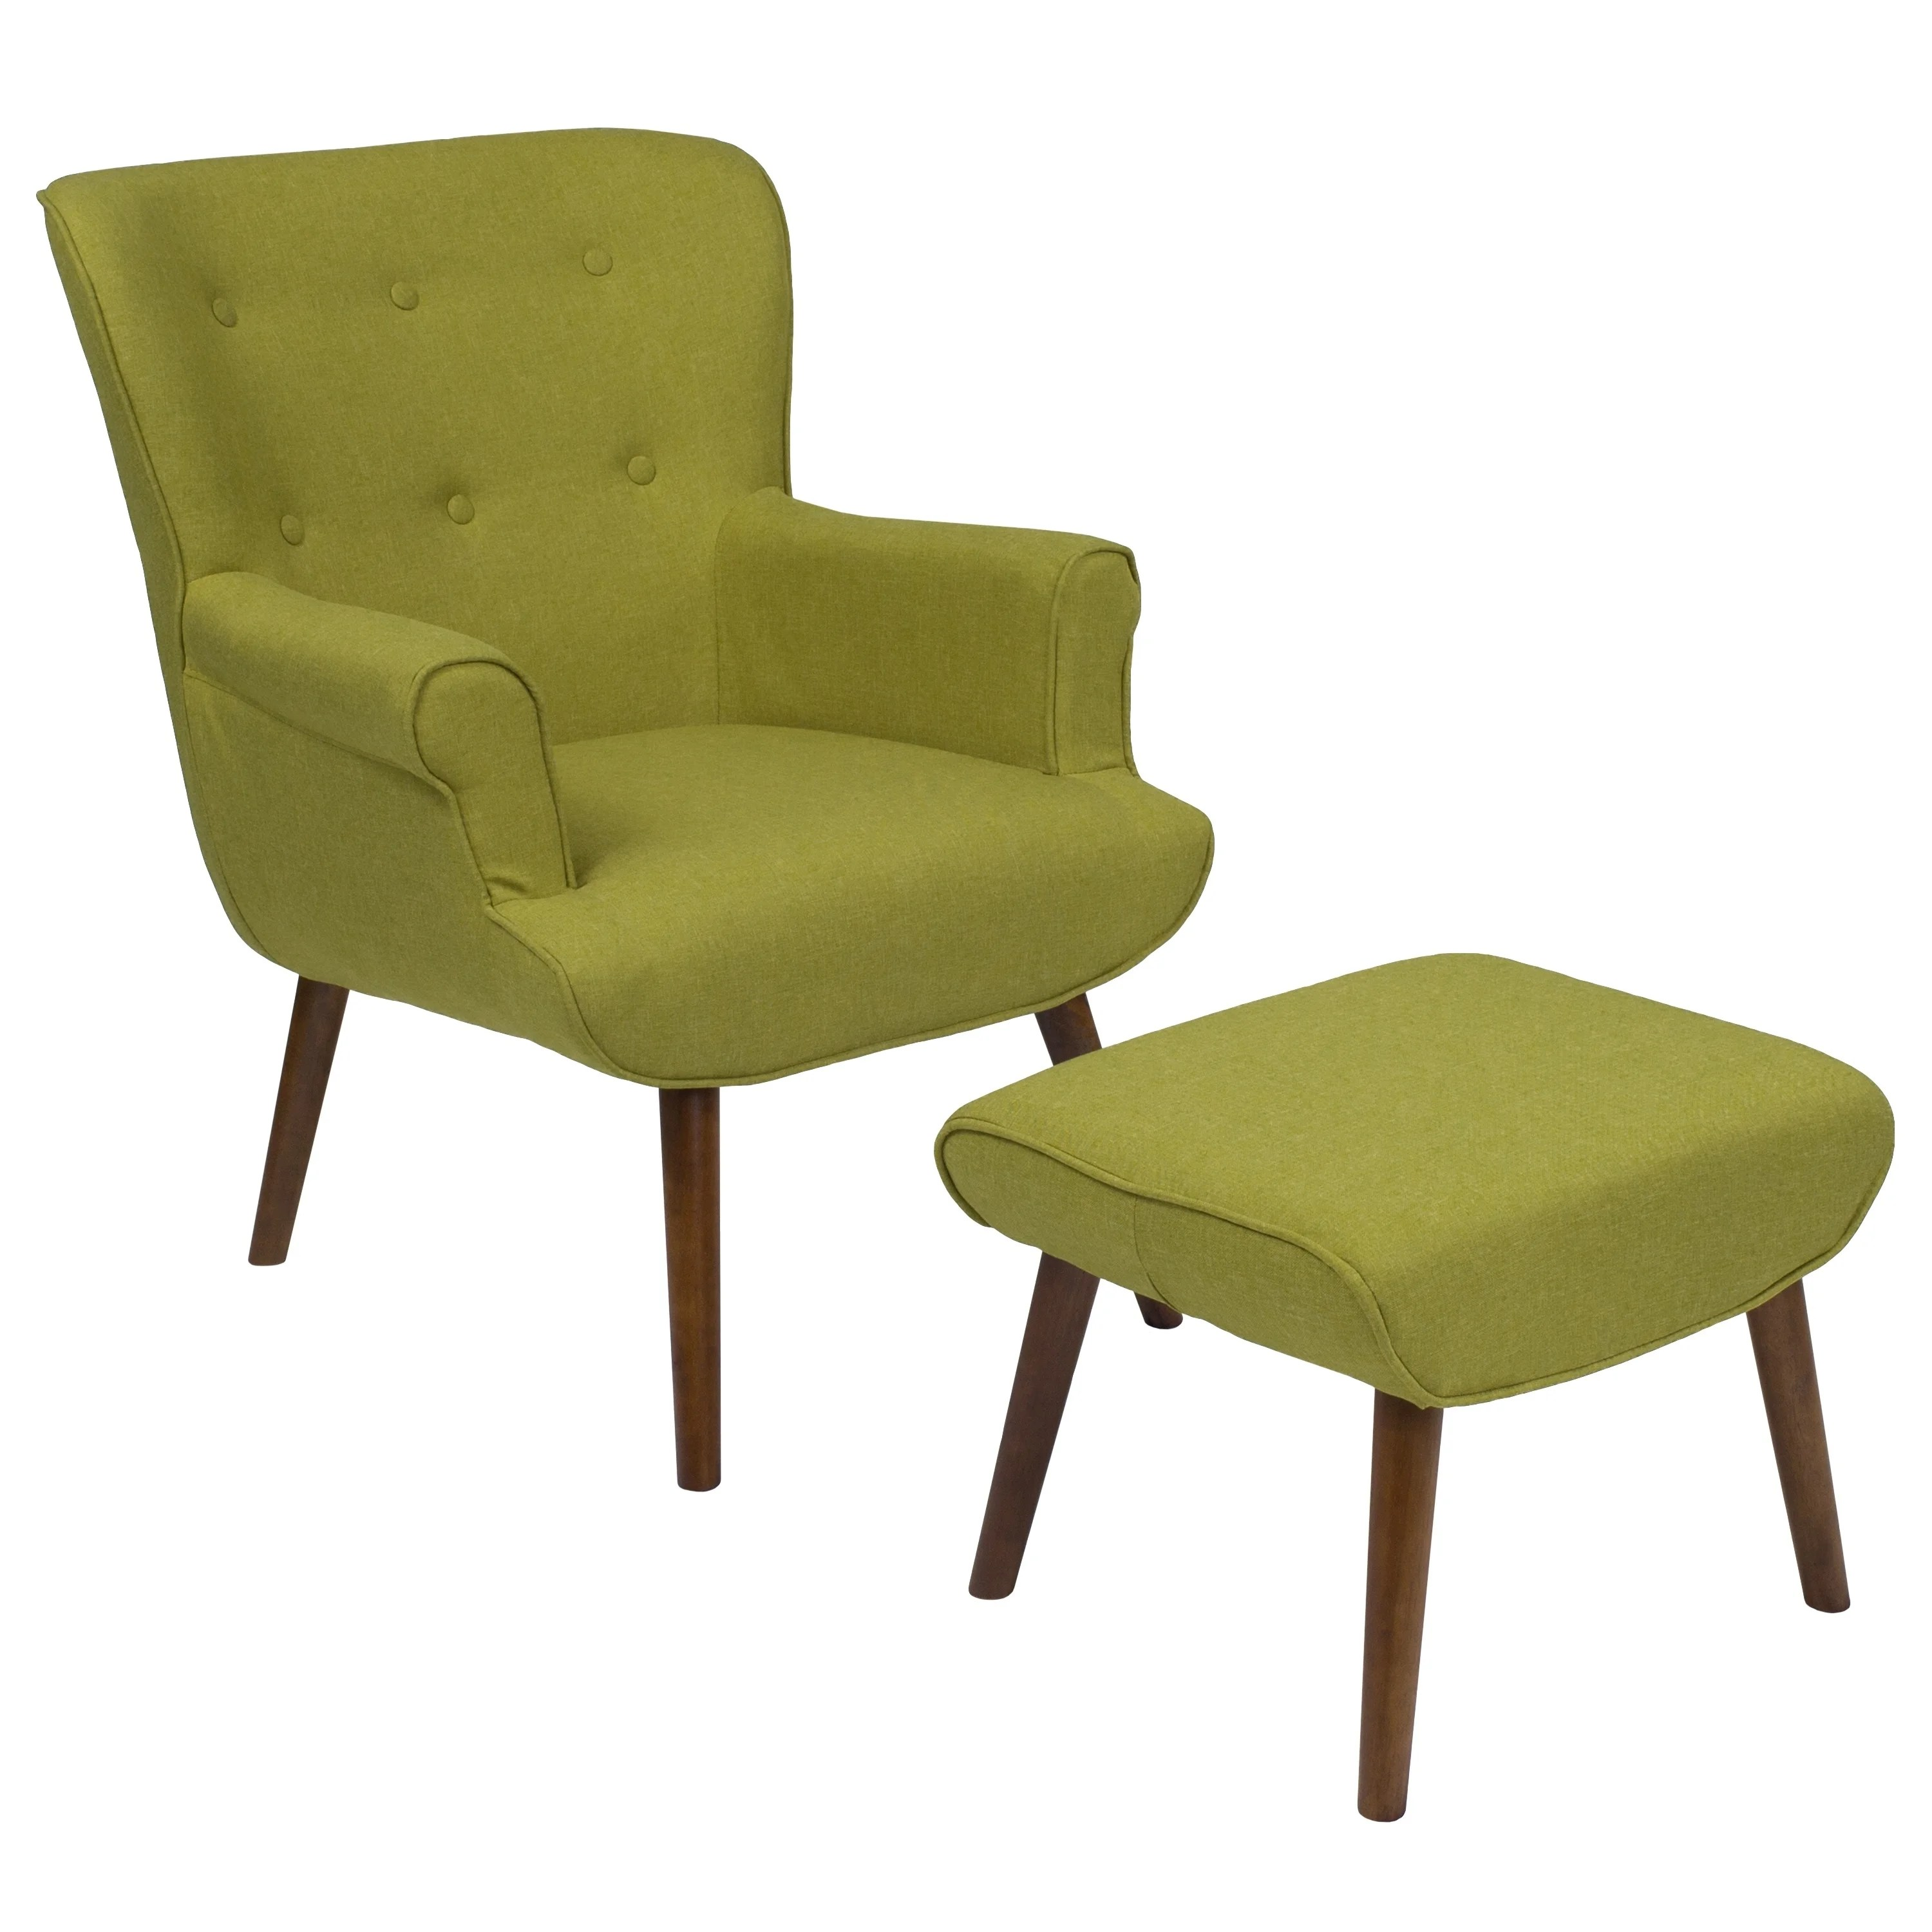 Green Upholstered Chair Hamilton Green Fabric Upholstered Chair And Ottoman Set